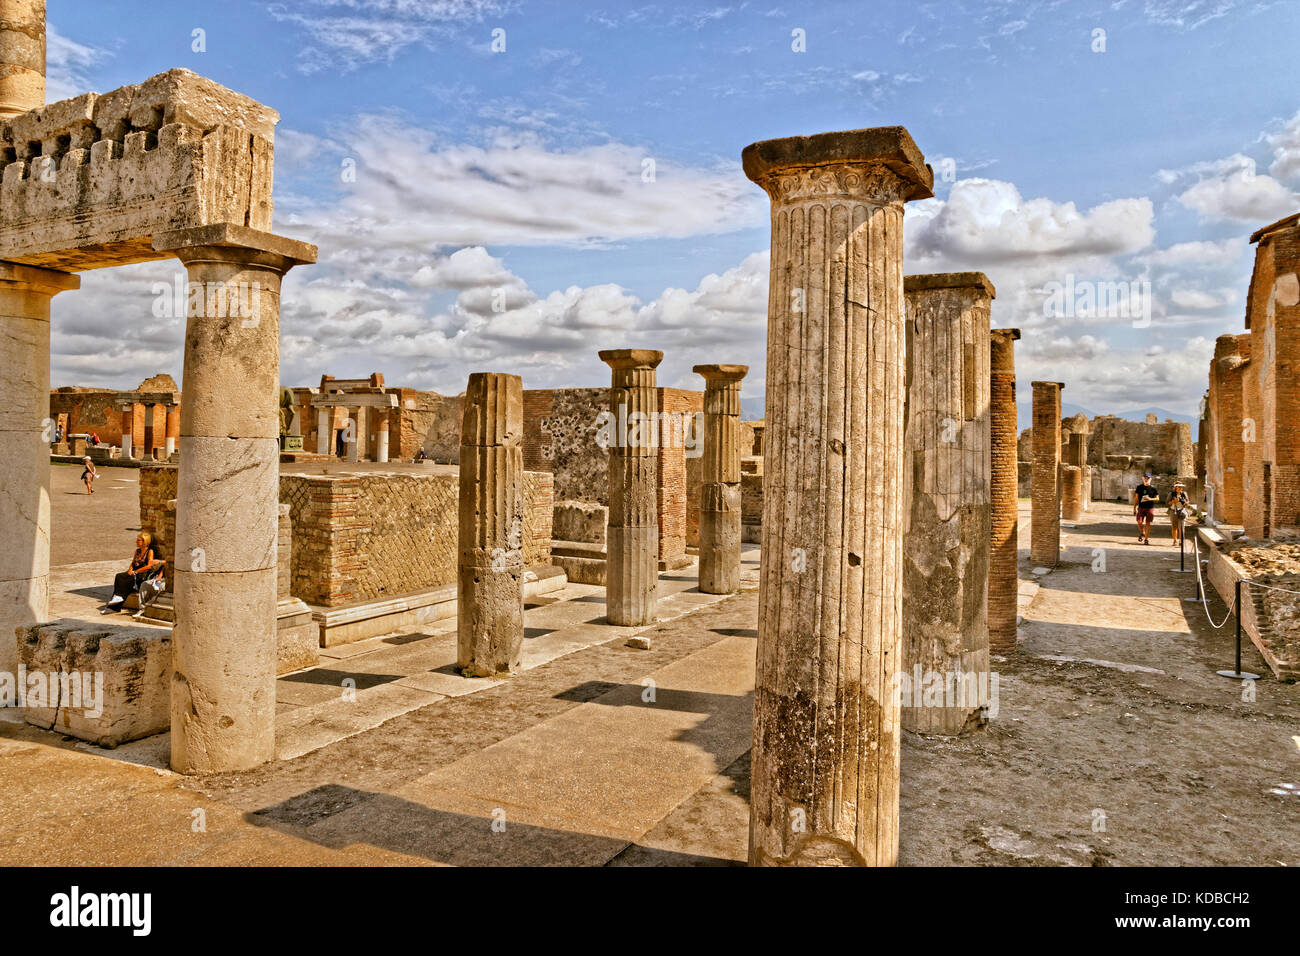 Columns at the Forum area in the ruined Roman city of Pompeii at Pompei Scavi near Naples, Stock Photo